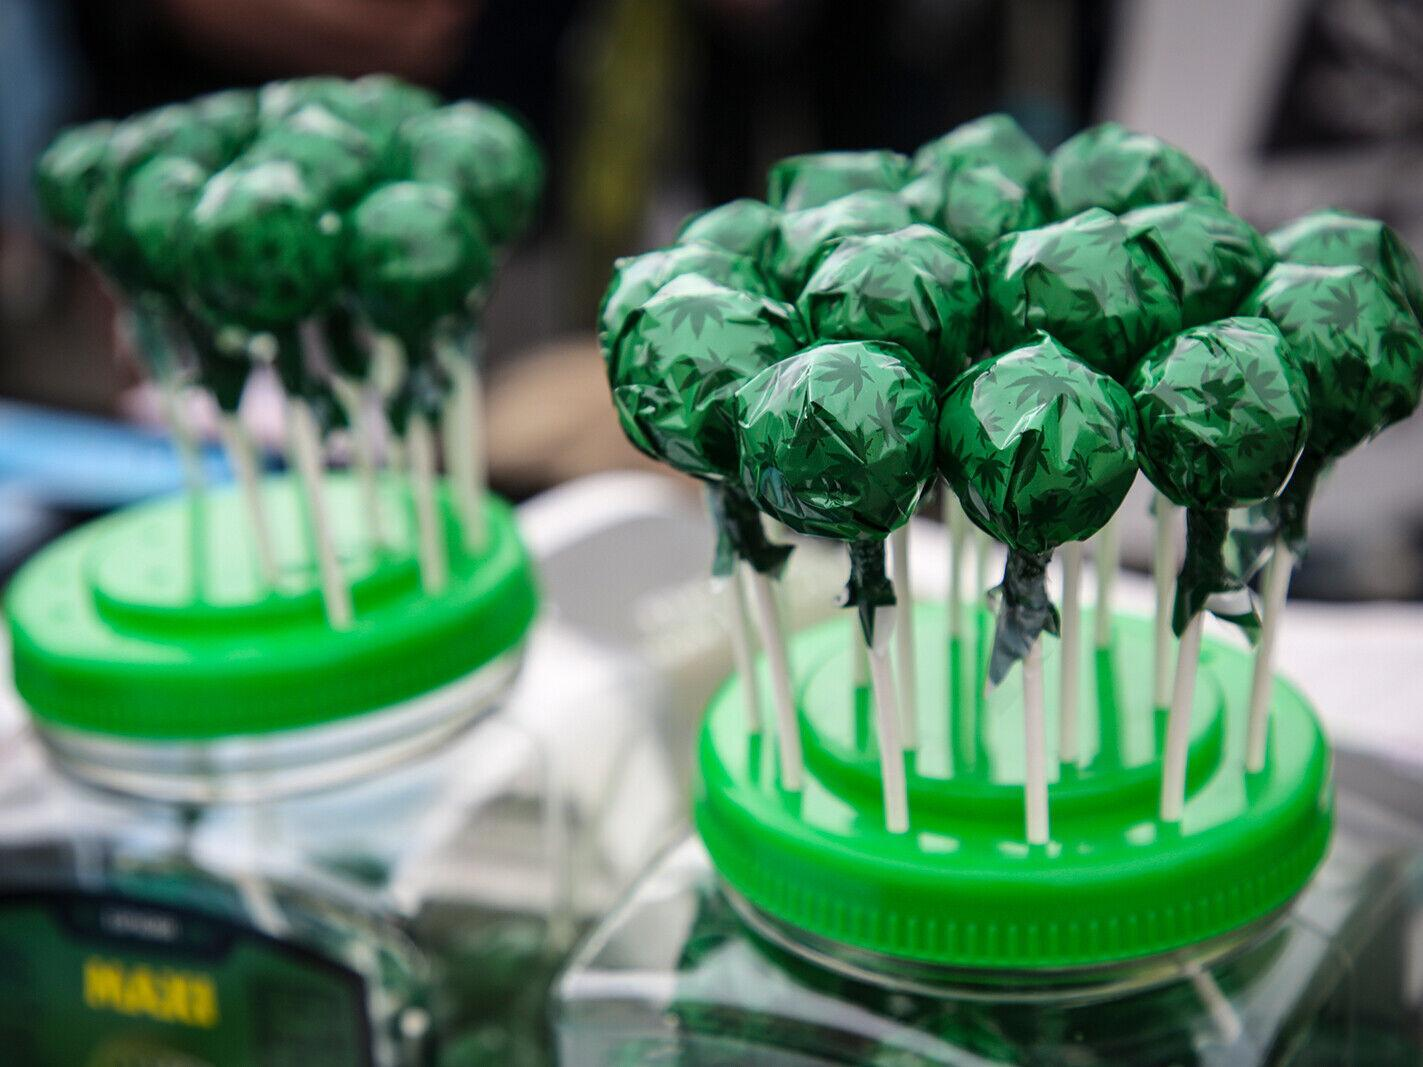 Children are at increased risk of accidental poisoning from marijuana edibles, study finds